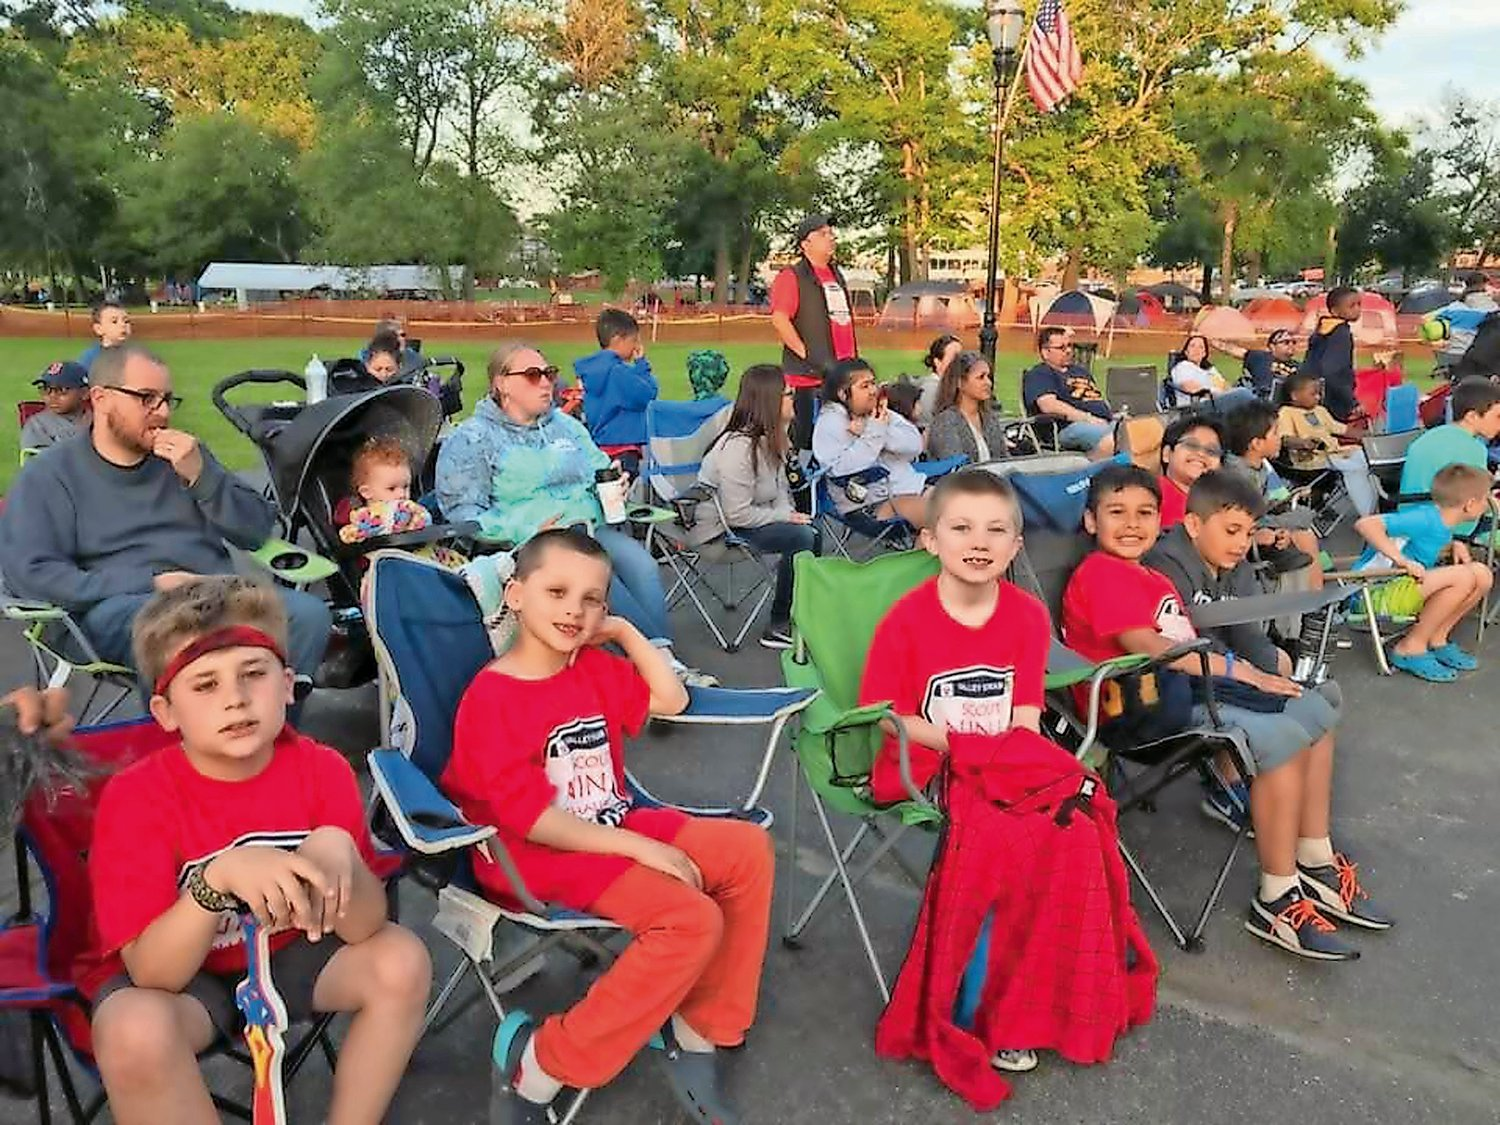 Scouts in Pack 367 and their parents prepared waited in front of the Bandshell on the Village Green for the skits to start.